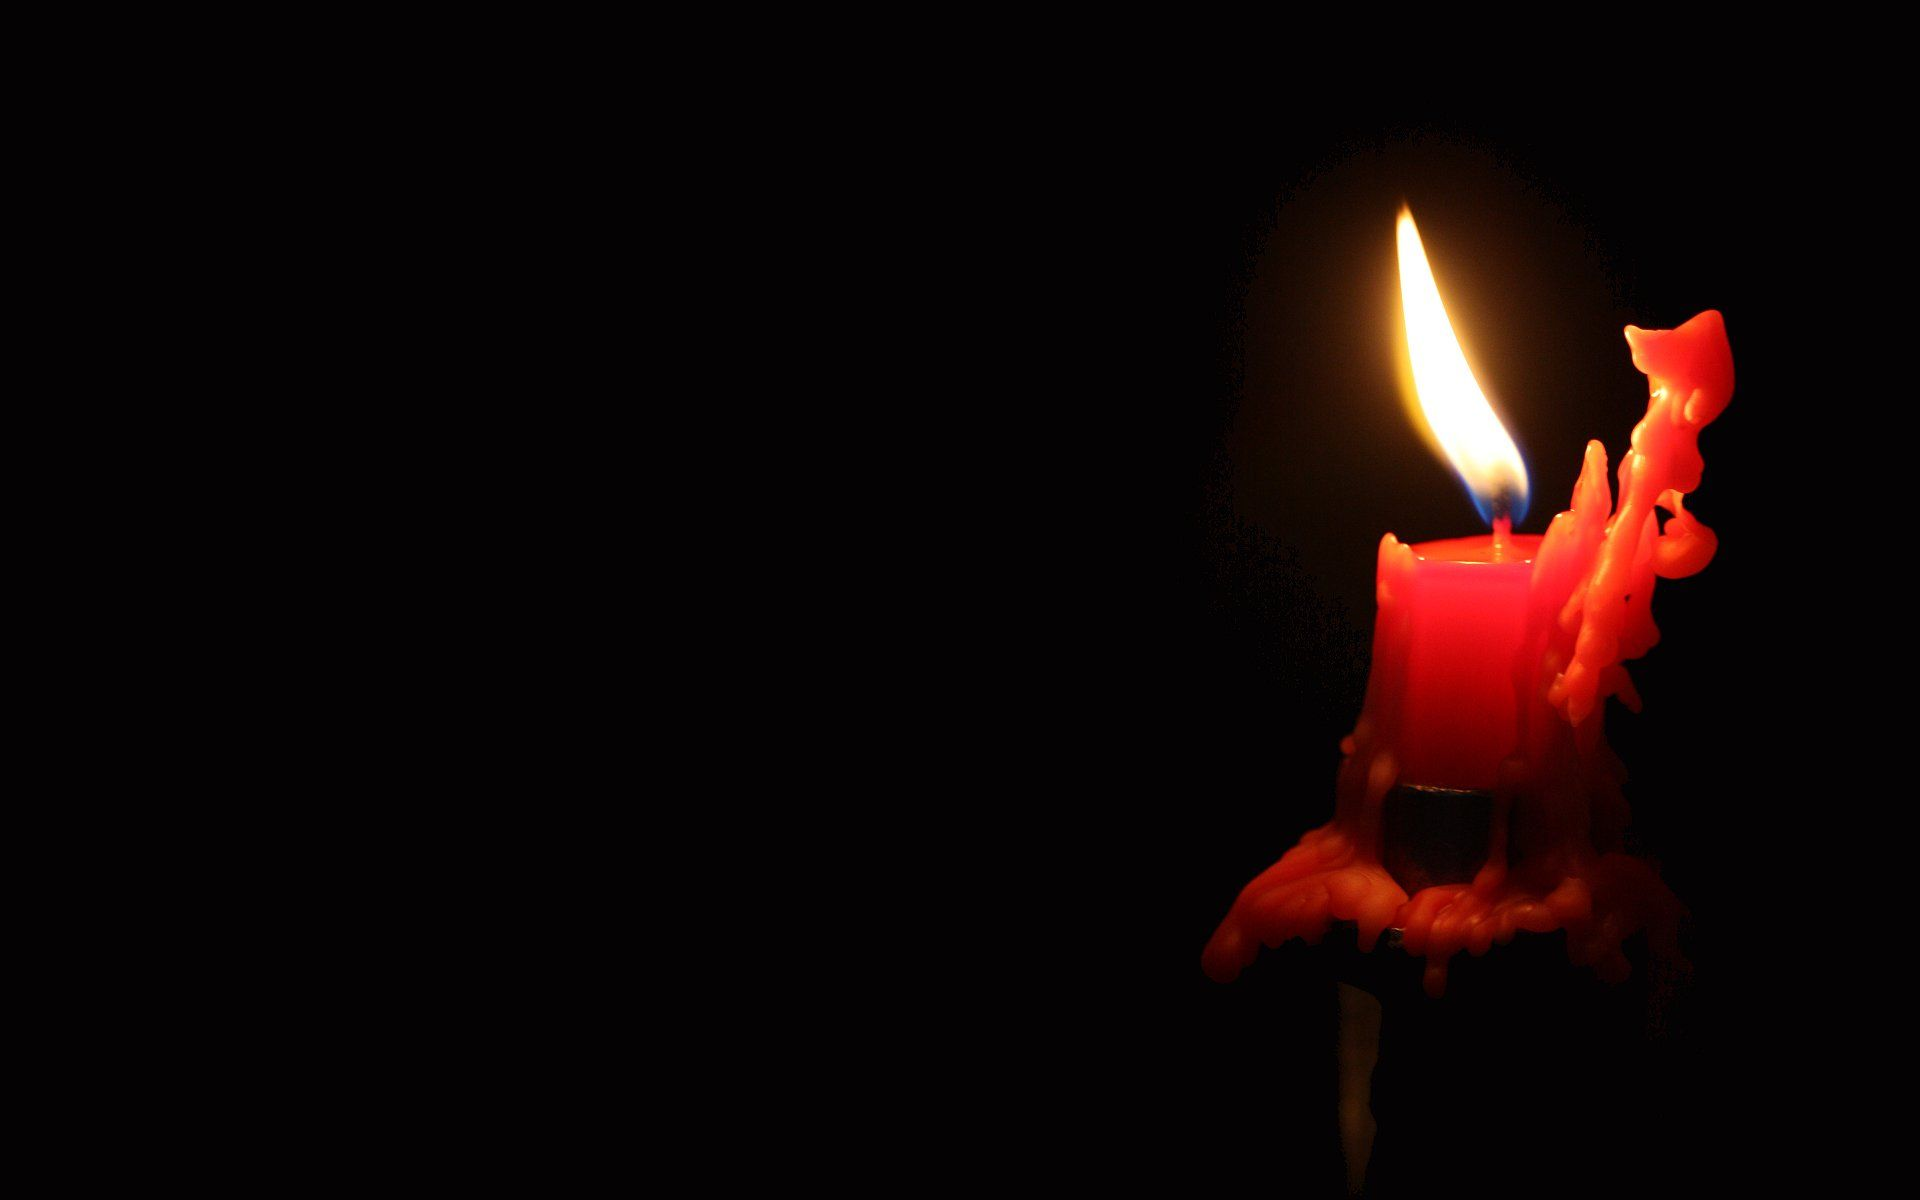 3d Candle Wallpaper Http Wallpapers Ae 3d Candle Wallpaper Html Candles Wallpaper Candle In The Dark Candles